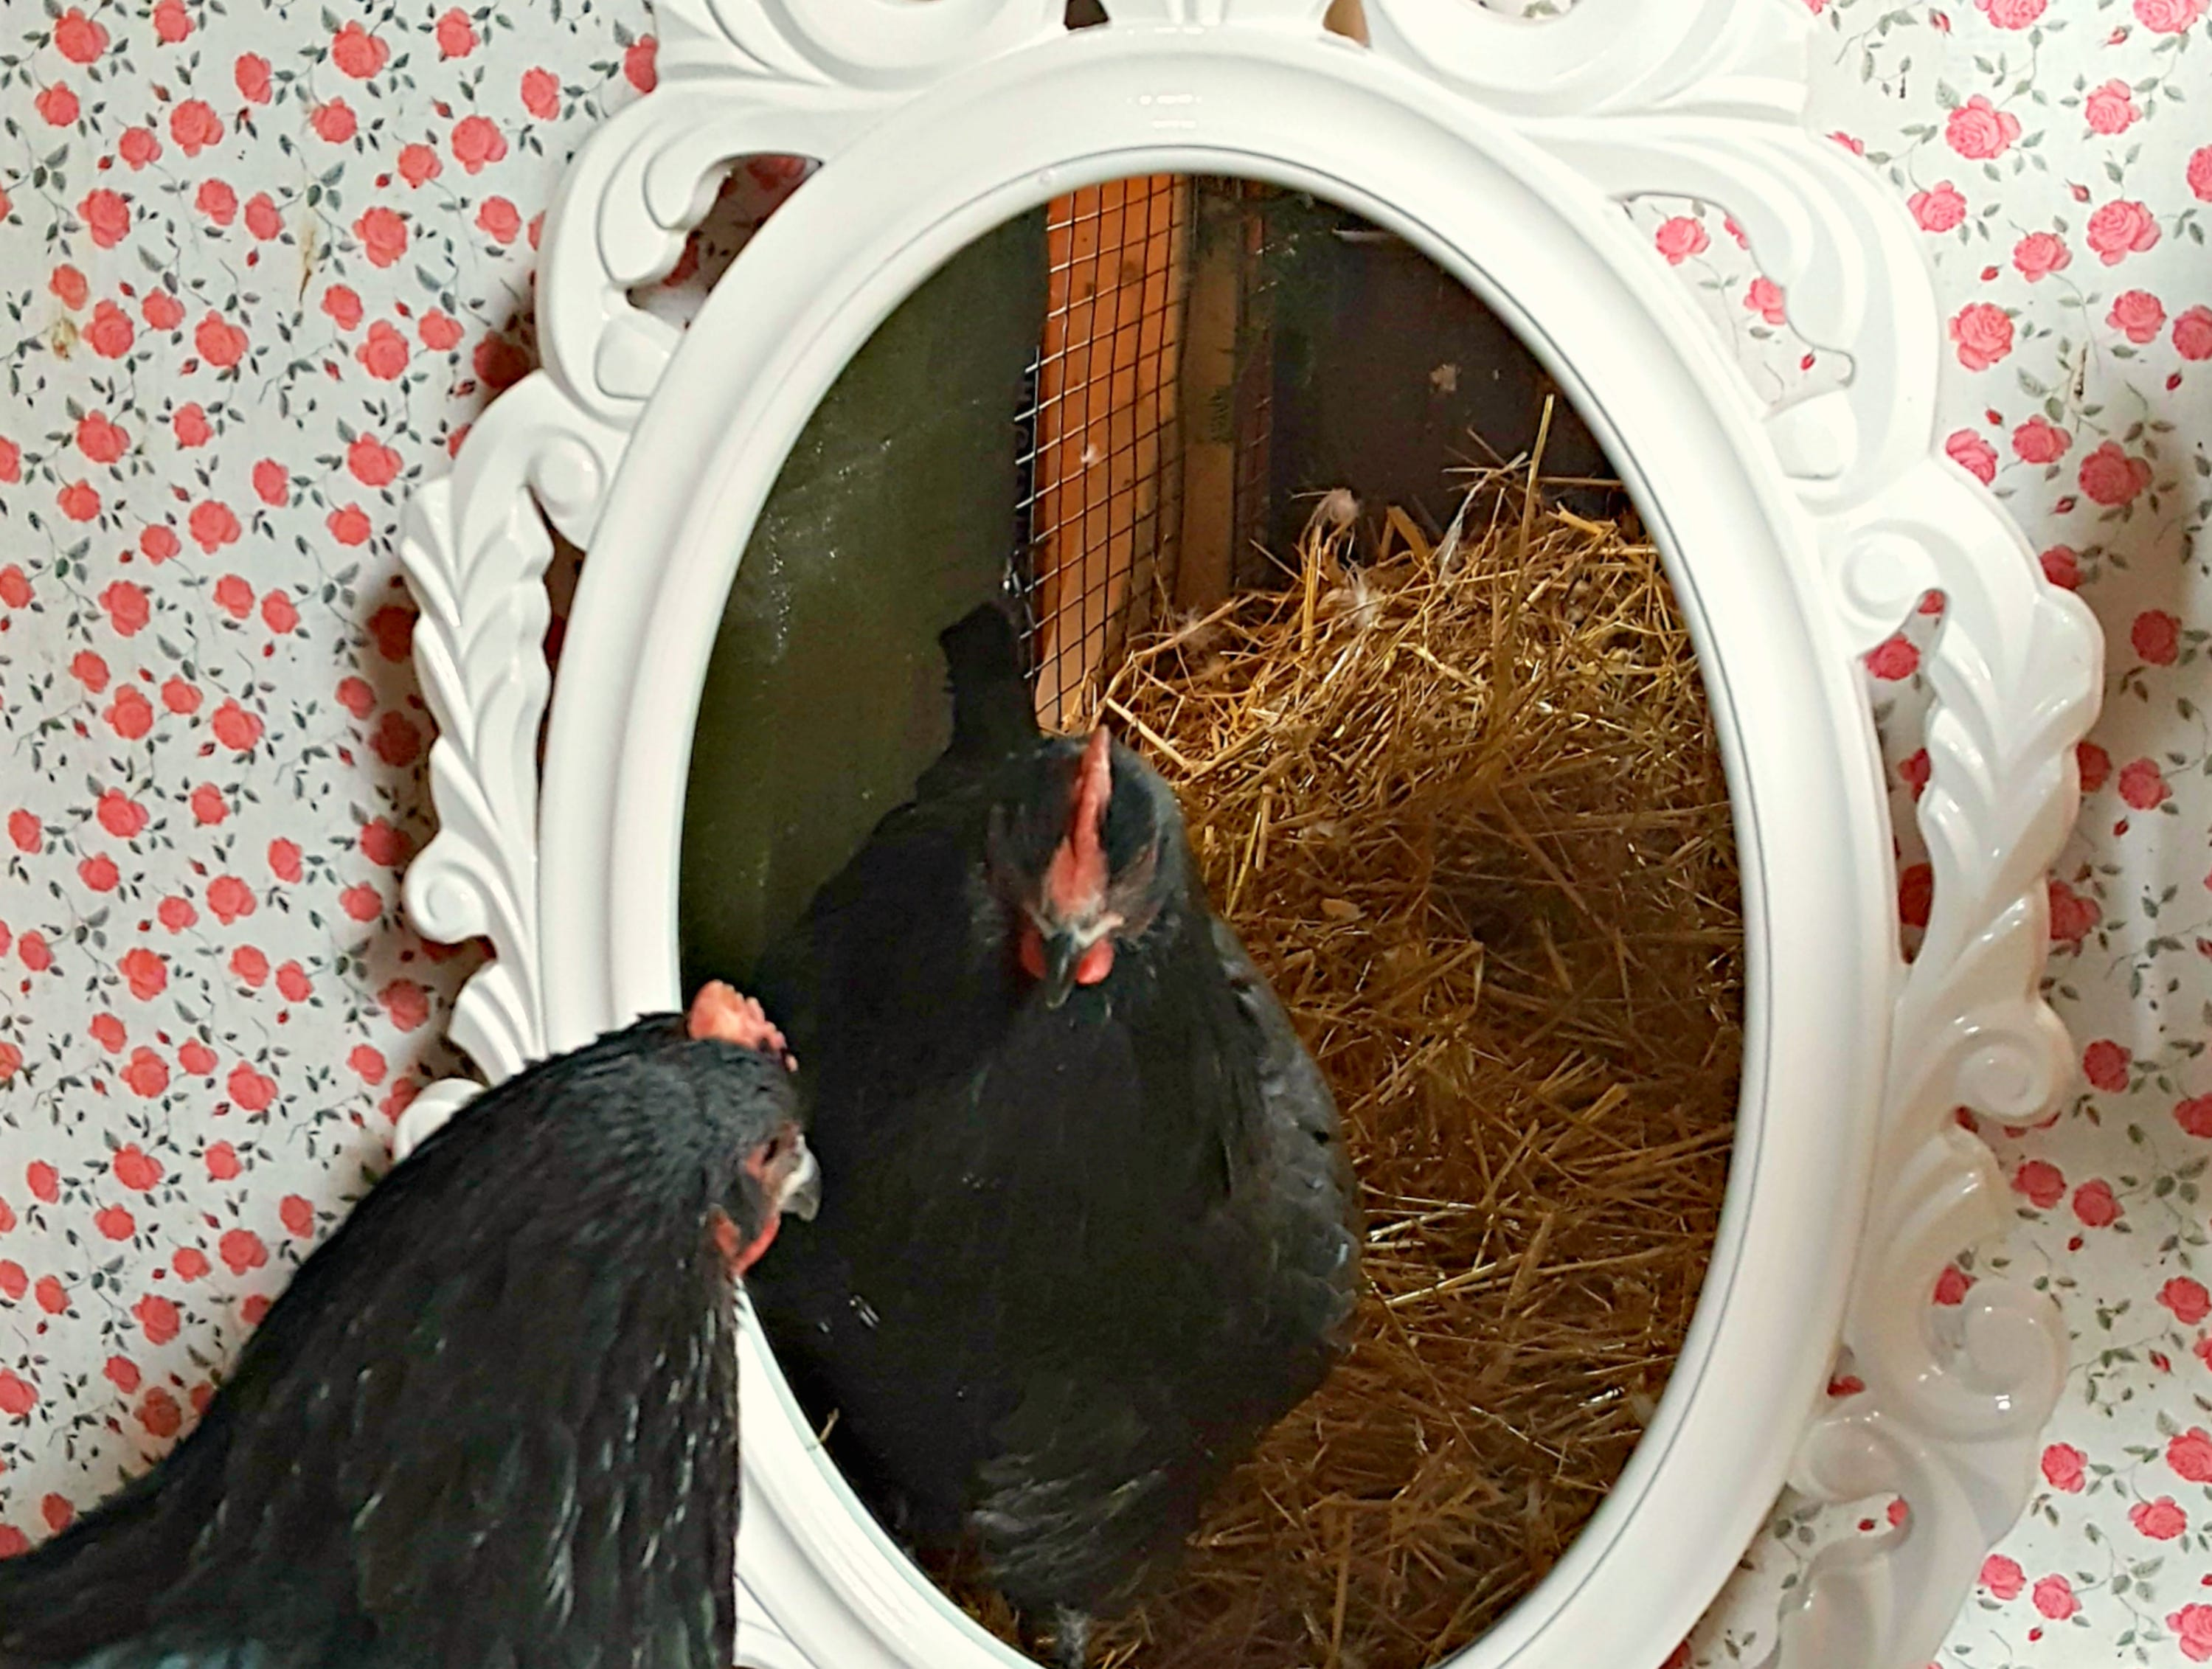 Fresh Eggs Daily's Lisa Steele says her chickens seem to like looking in the mirror she has placed in her chicken coop as part of the decor.